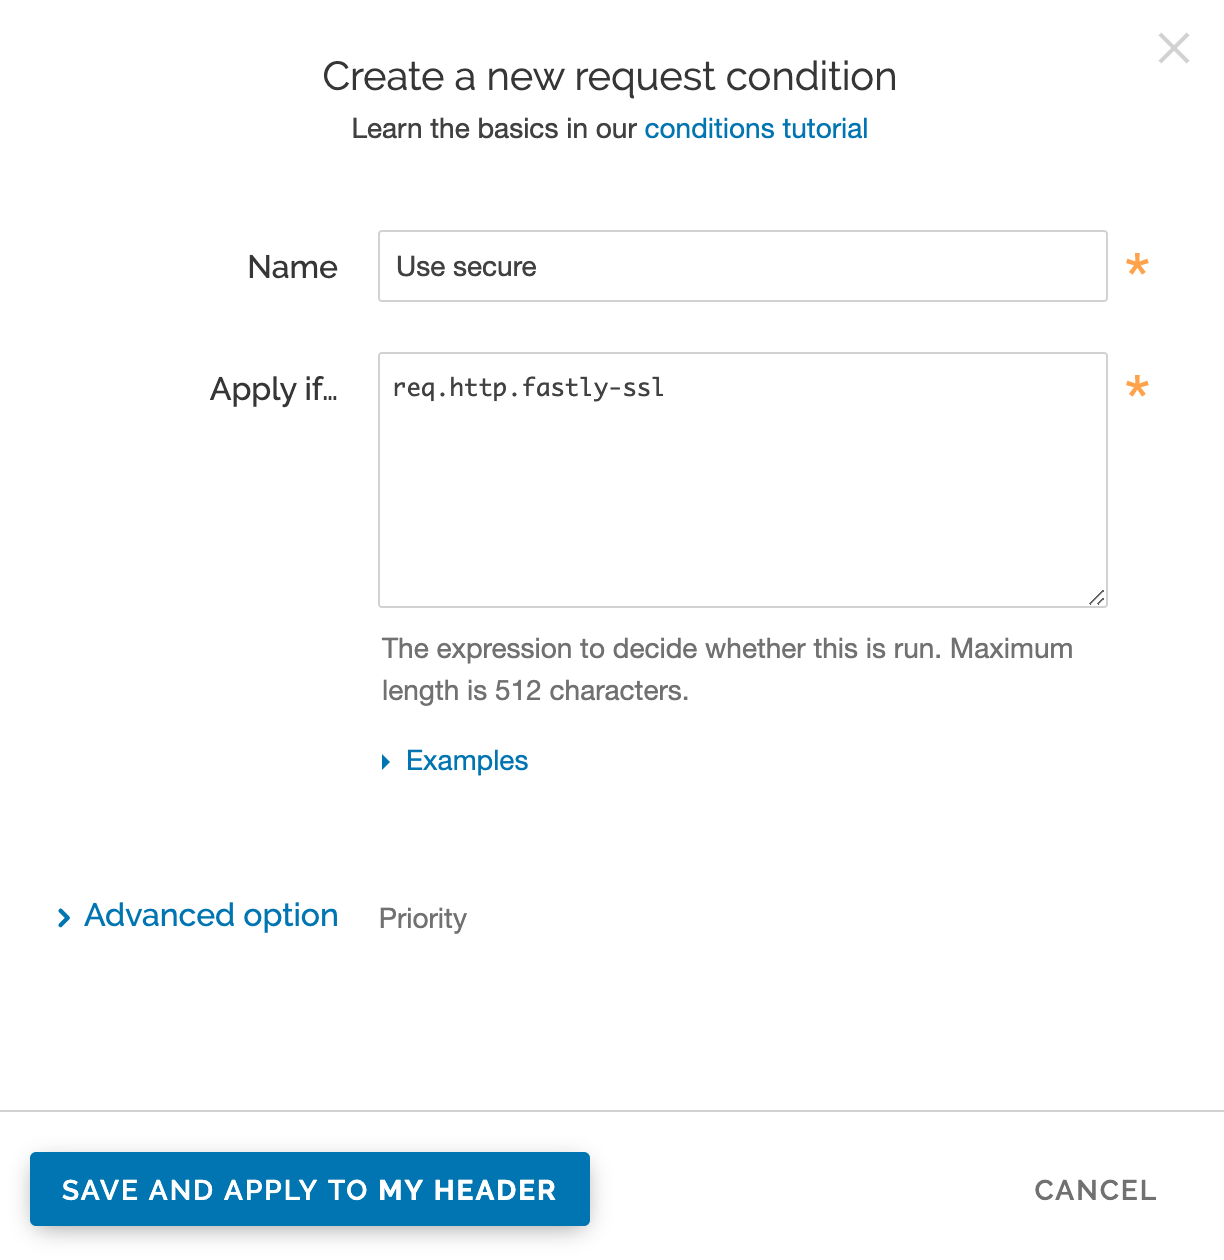 the Create a new request condition window with settings for the secure server